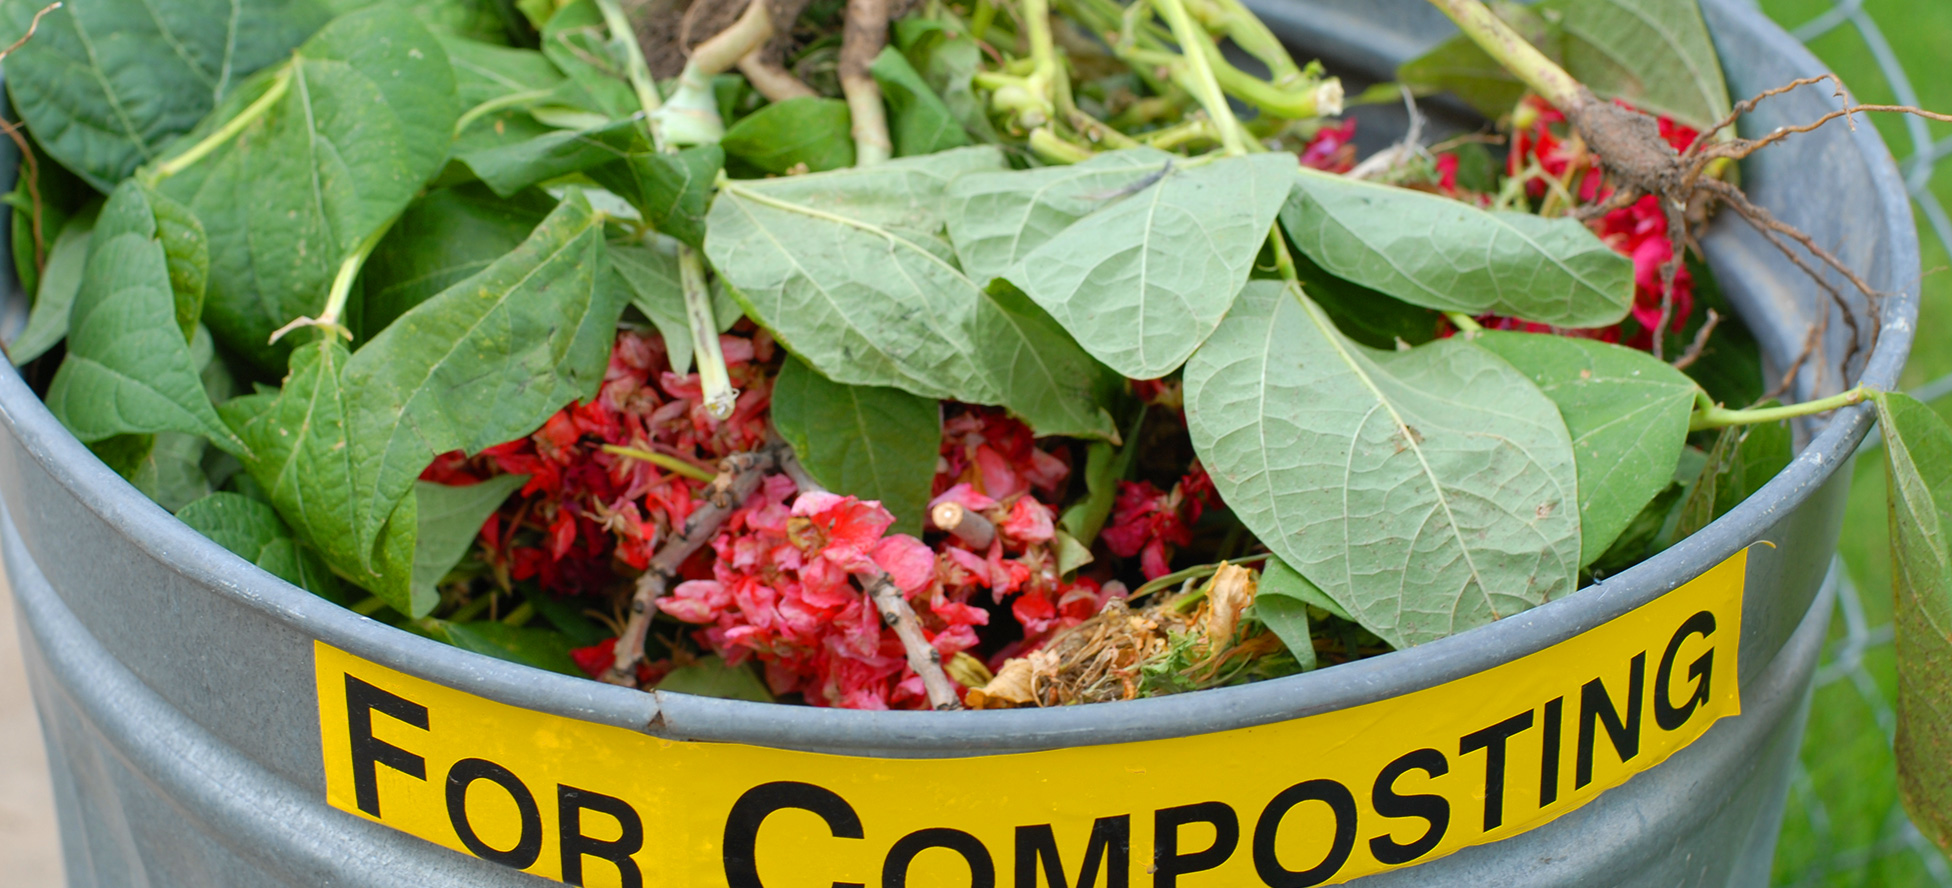 Composting can